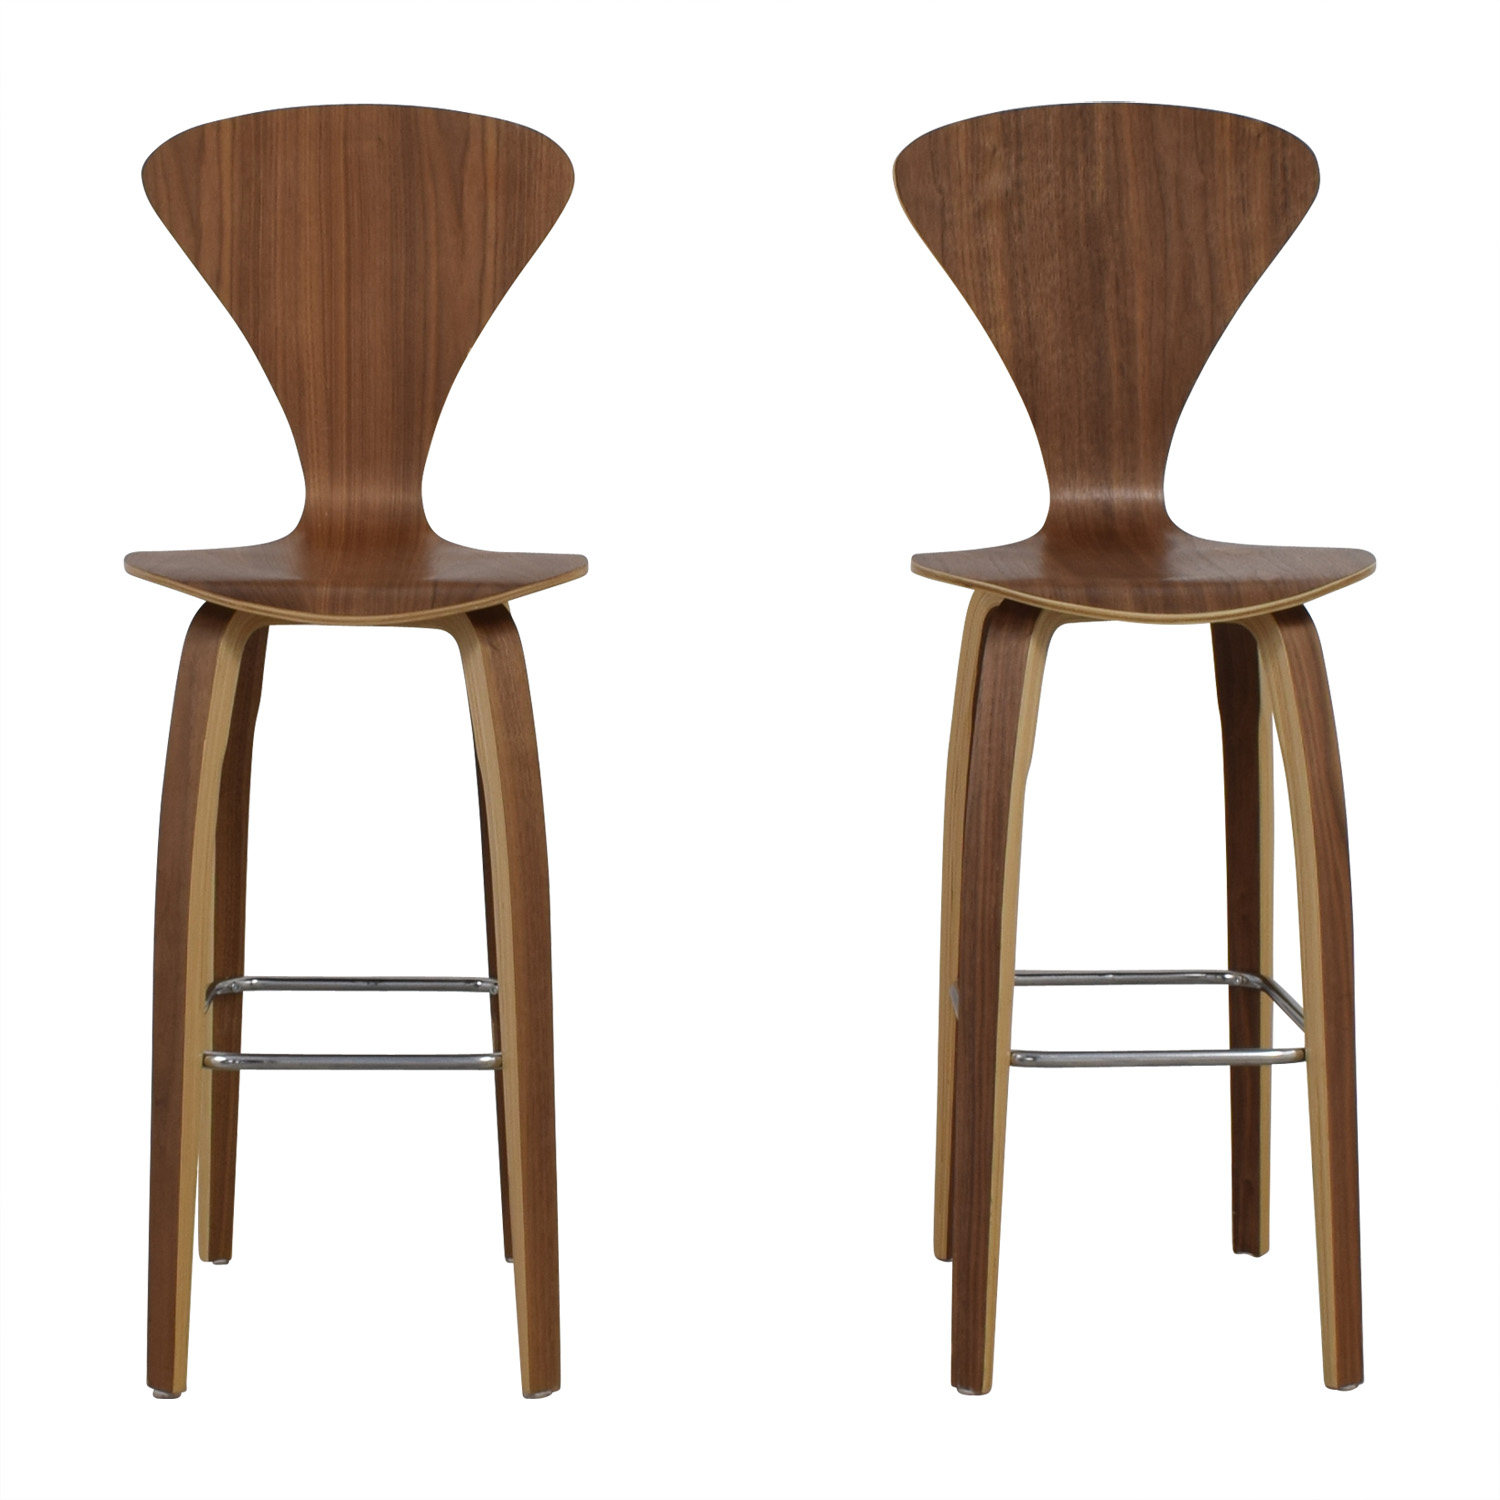 Pleasing 86 Off Langley Street Langley Street Olivia Bar Stools Chairs Bralicious Painted Fabric Chair Ideas Braliciousco